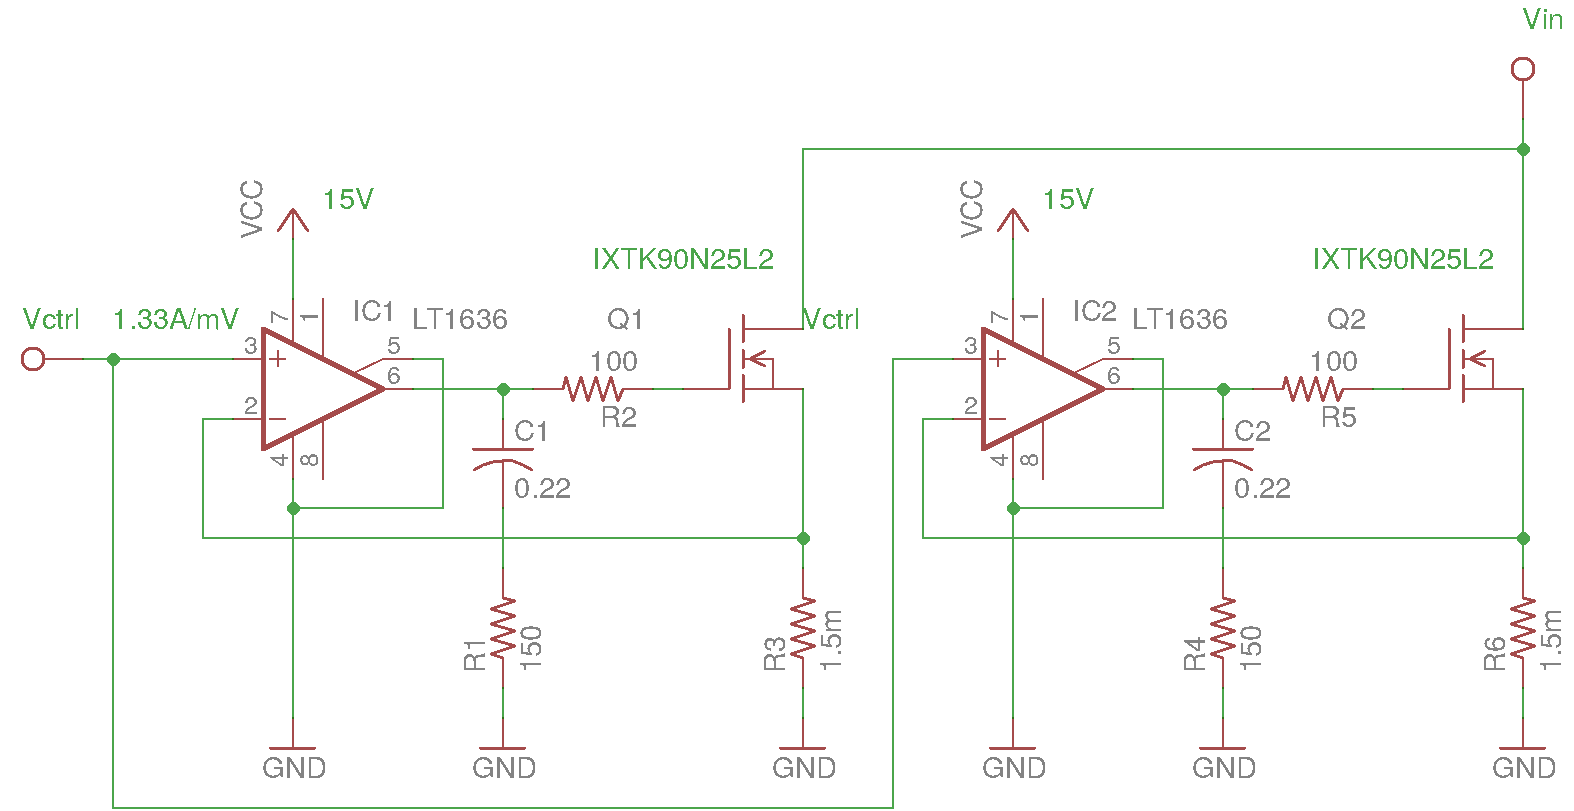 Can Someone Explain This Dc Load Circuit Page 1 How To Design Change The Gain Without Changing Value Of Shunt Resistors Also Im Still Not Clear On Exactly What C1 Does Would Behave